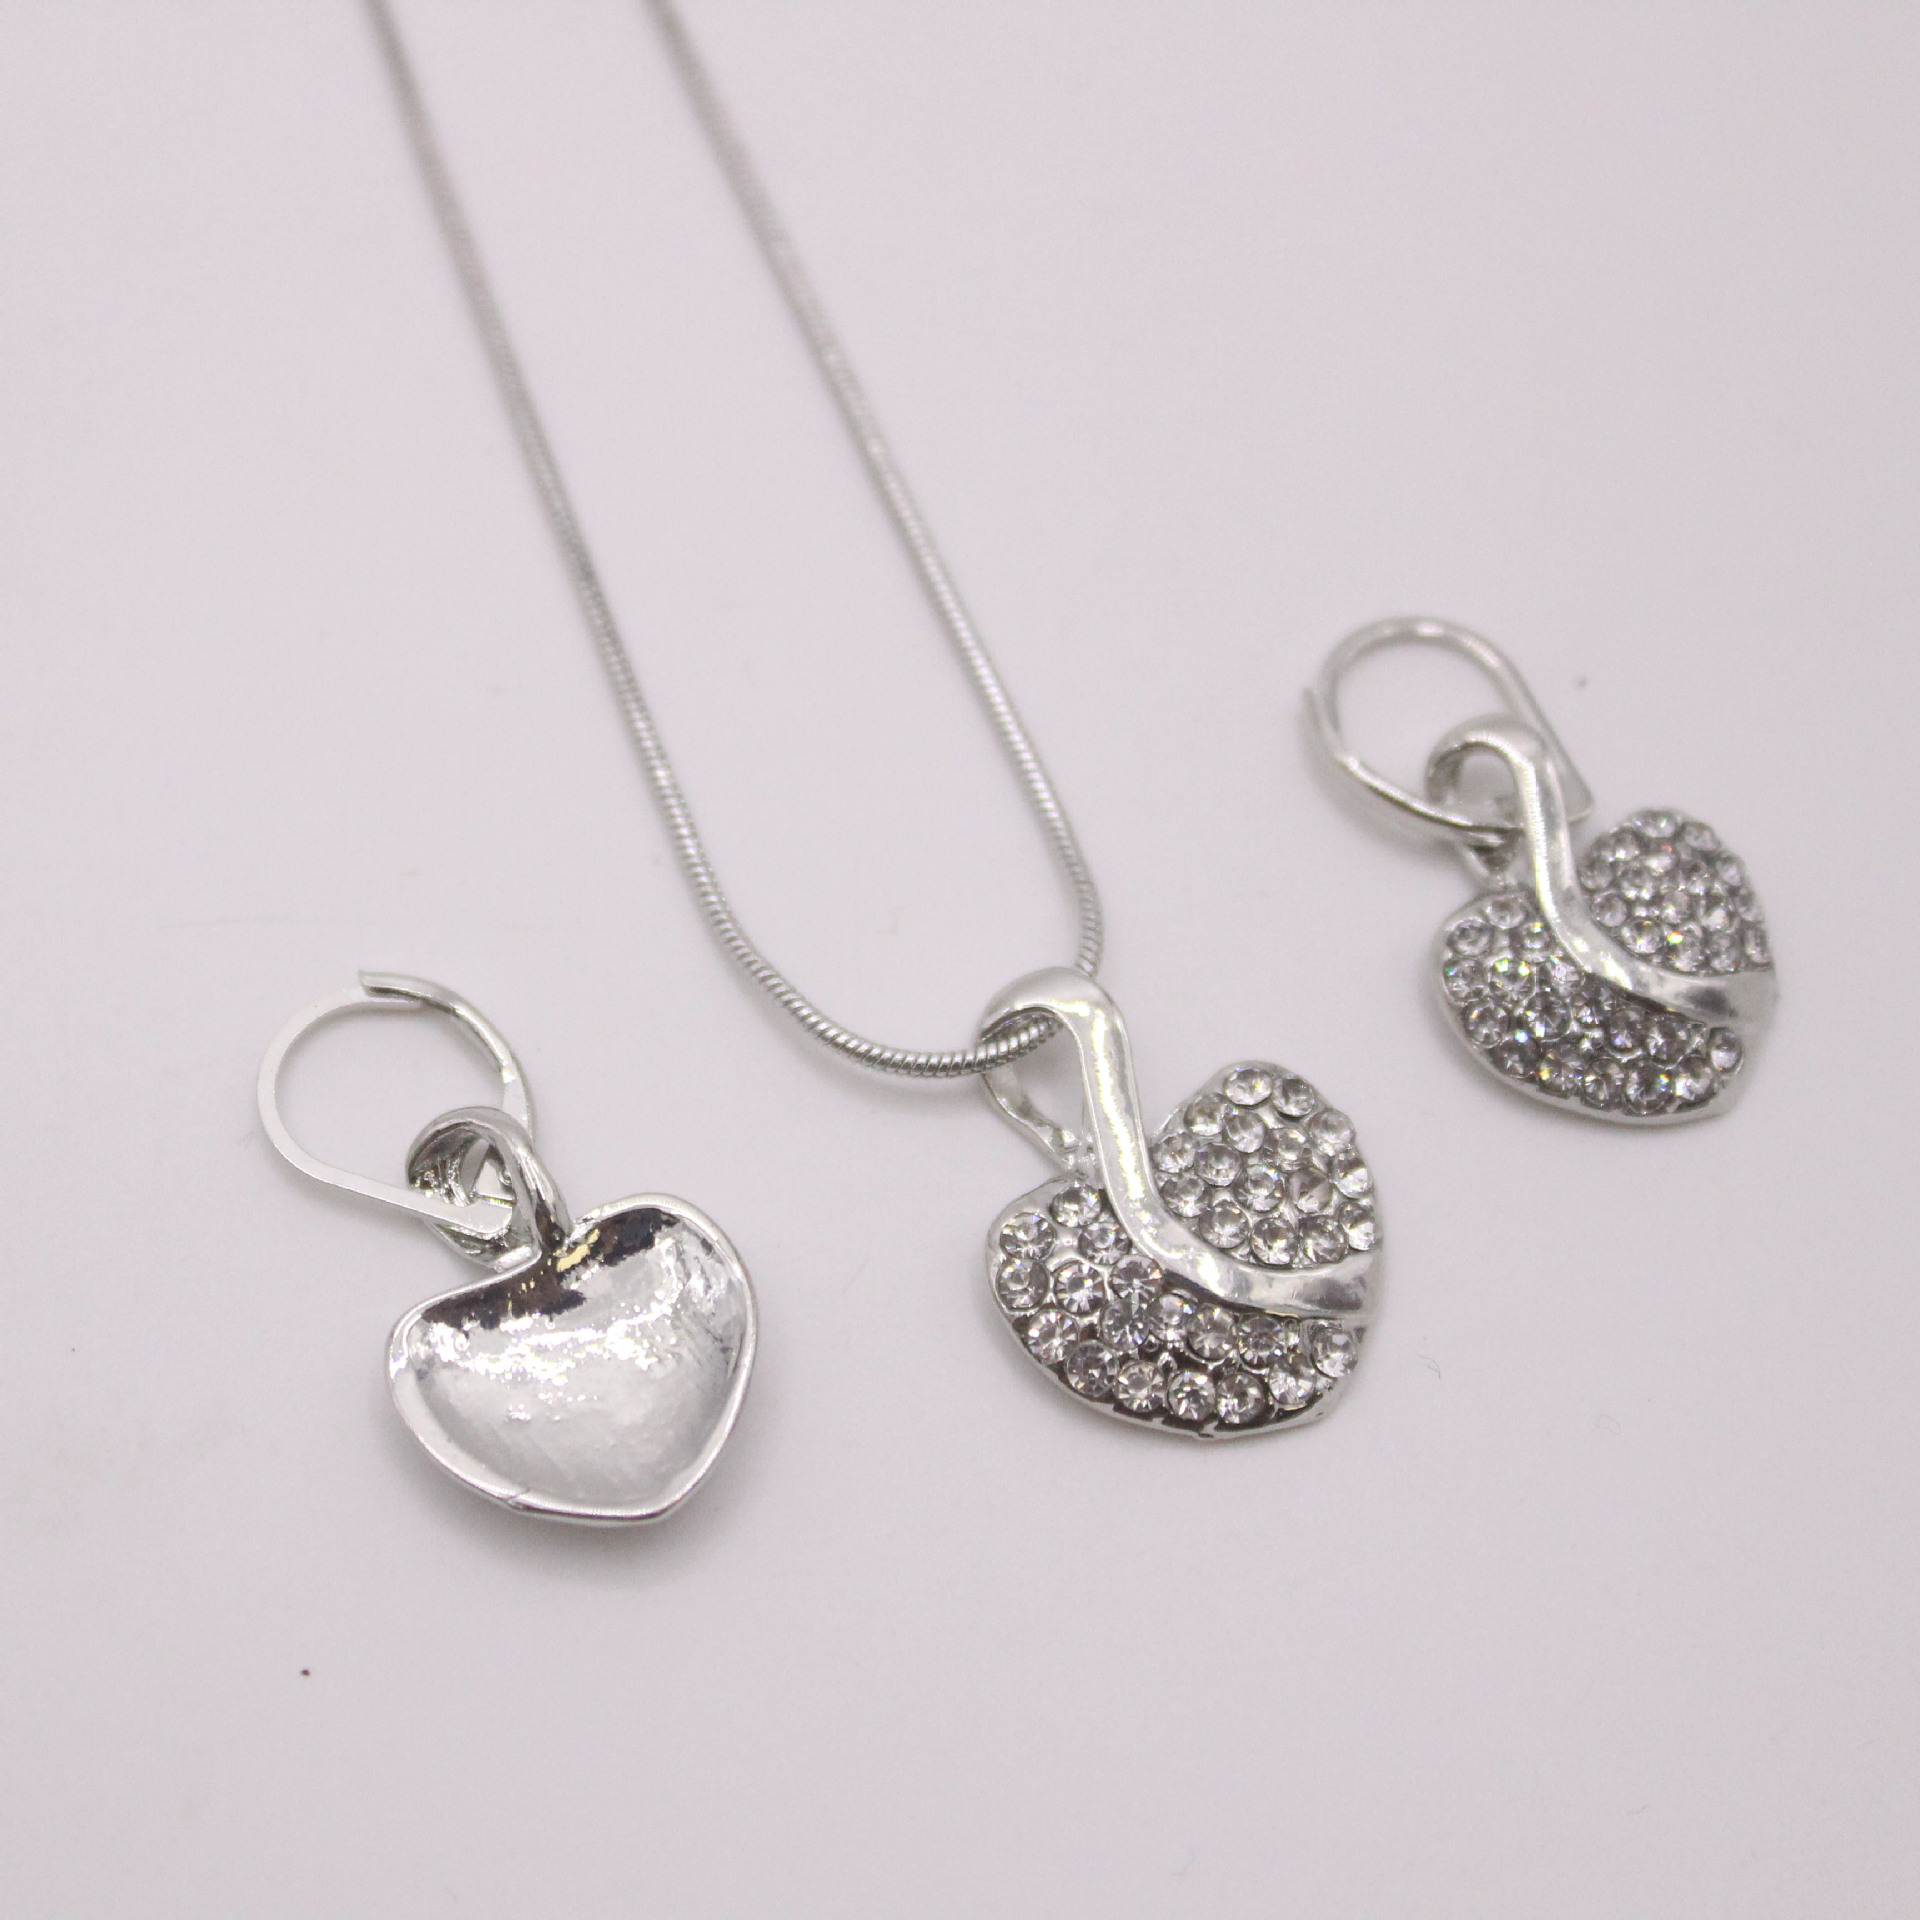 New Heart-Shaped Pendant Fashion Crystals From Austrian Necklaces Jewelry For Women Christmas Party Wedding Jewelery C